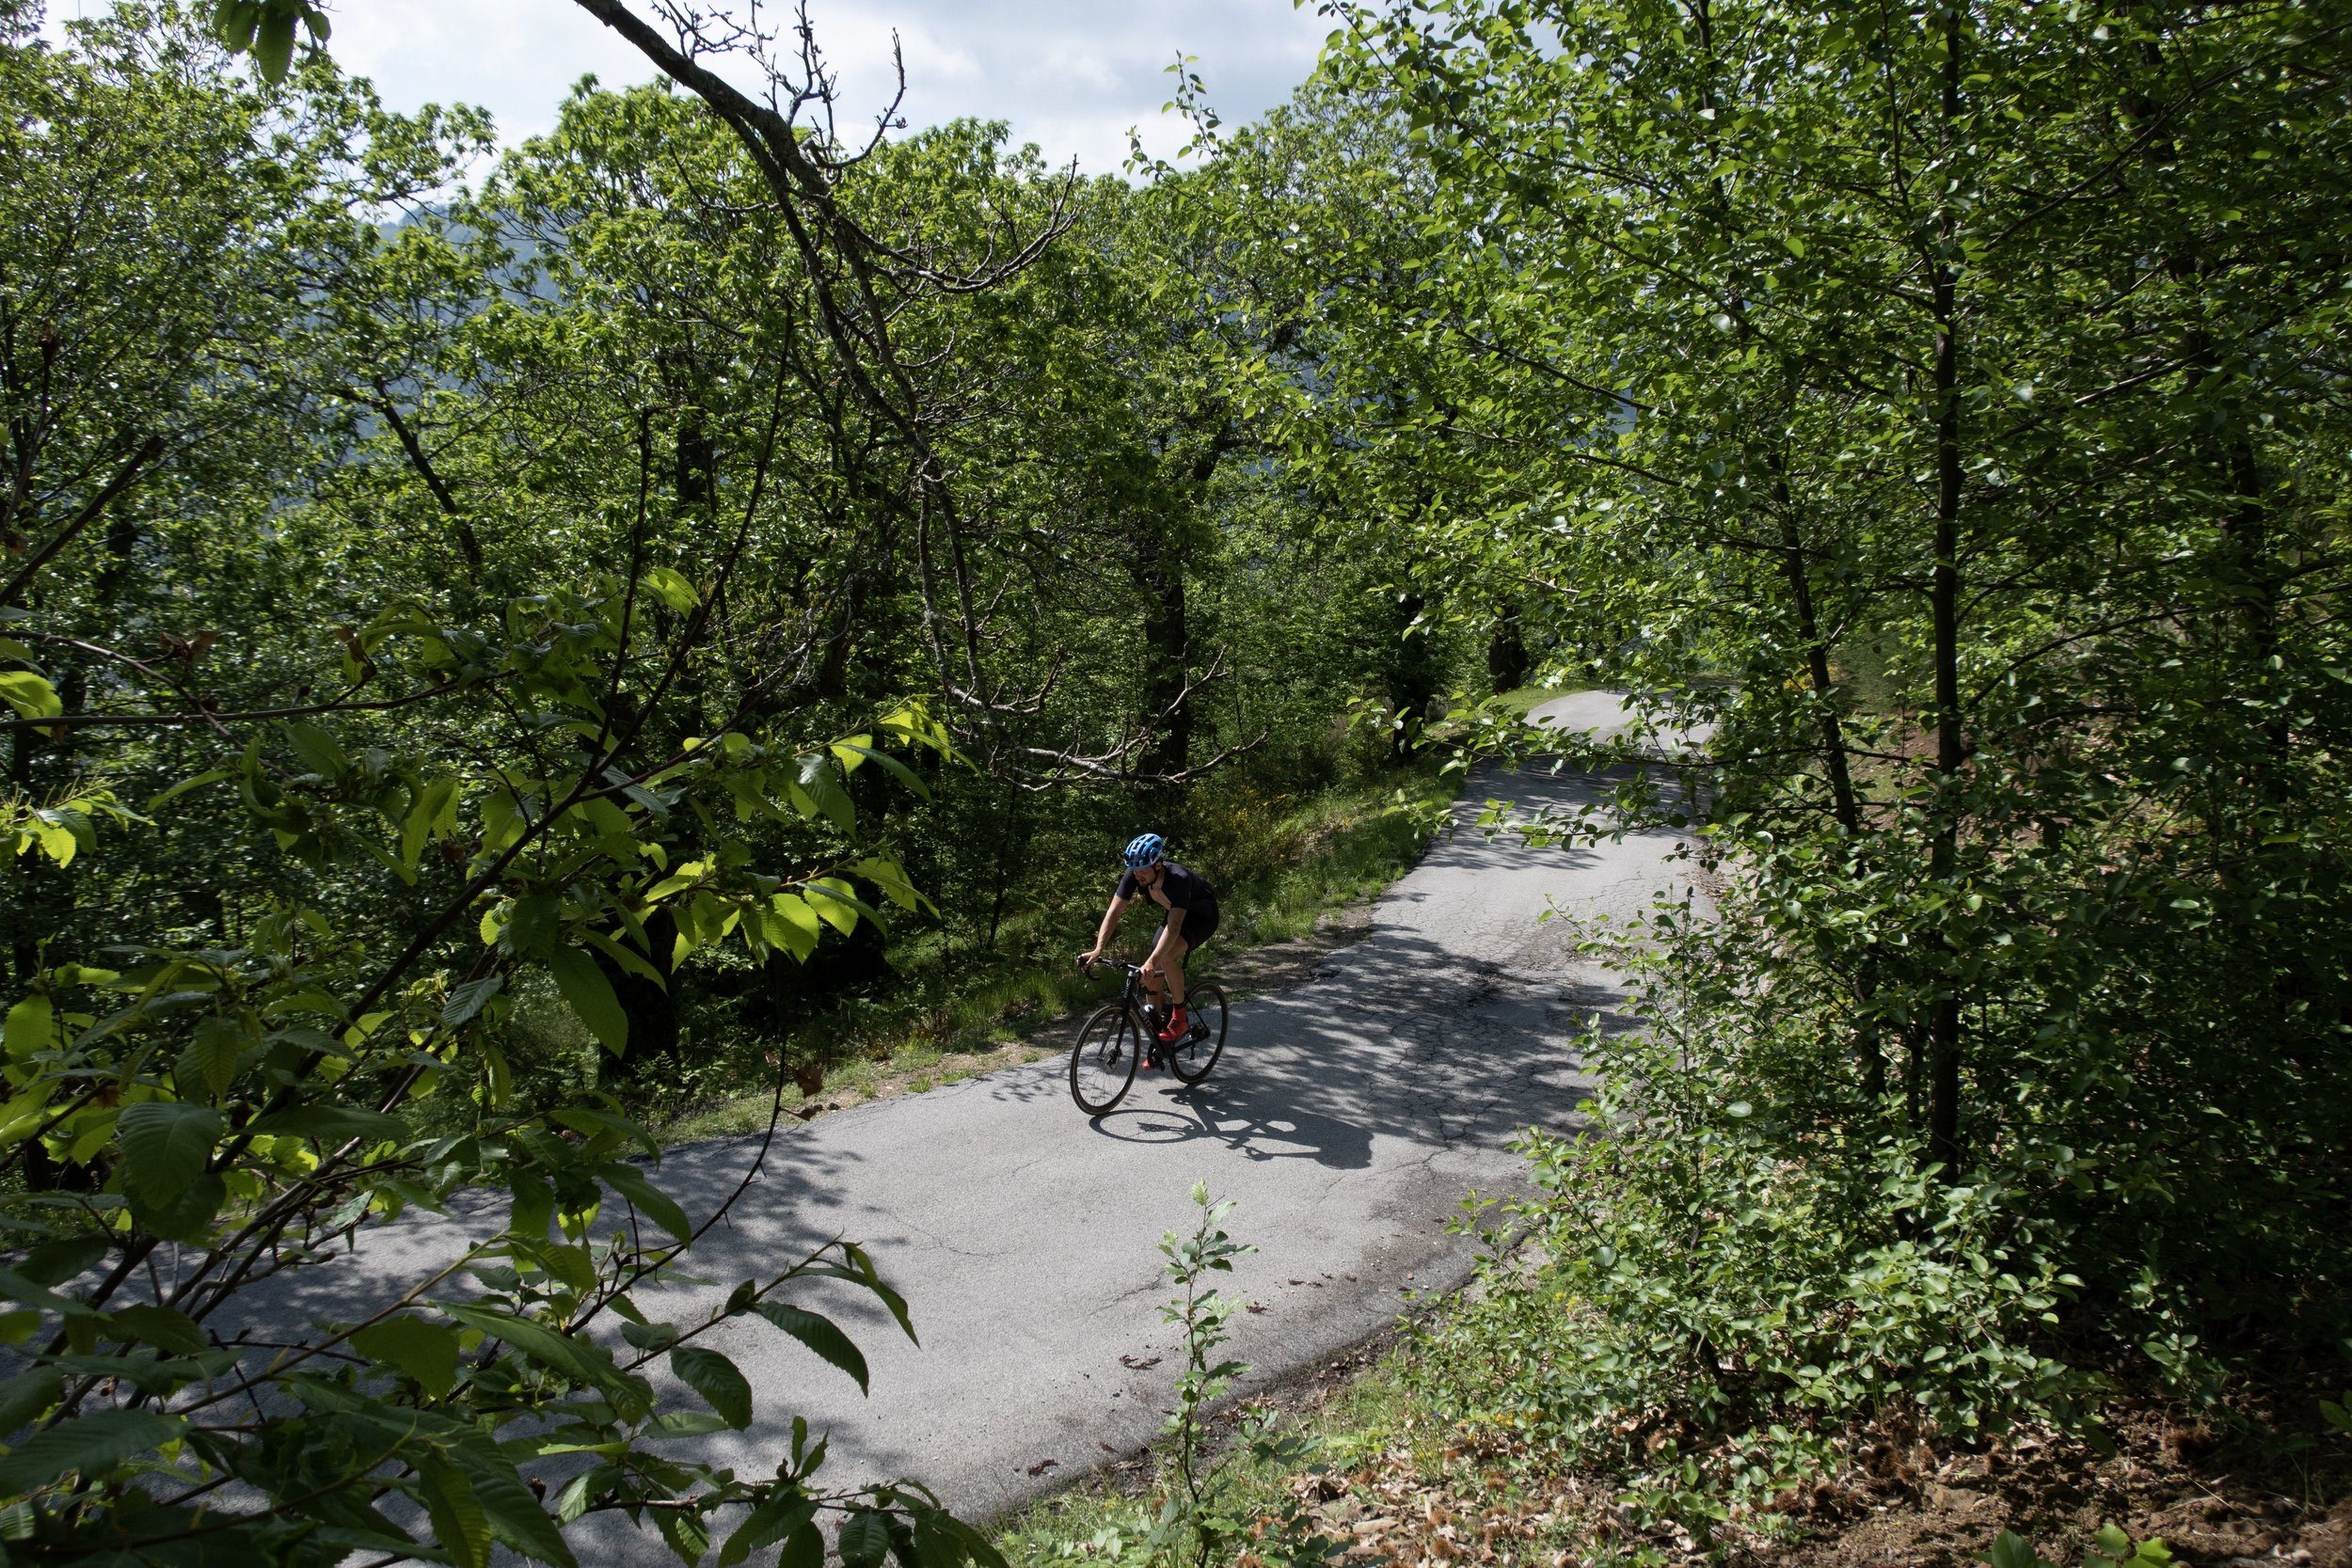 """8. Val di Vaiana - 5 km, avg. 9.9%Speaking of hidden climbs in Garfagnana, this one up to Renaio might be only five kilometres long but steep enough you'll want to stop and pet the sheep halfway. At 18 hairpins, it's like an eerie Alpe d'Huez of Tuscany. Ride in via Barga and out Tiglio Basso. Then do the loop in reverse. Of course, not before a visit to the Masterpieces of Sweetness in Barga, """"Theobroma Capolavori di Dolcezza."""""""